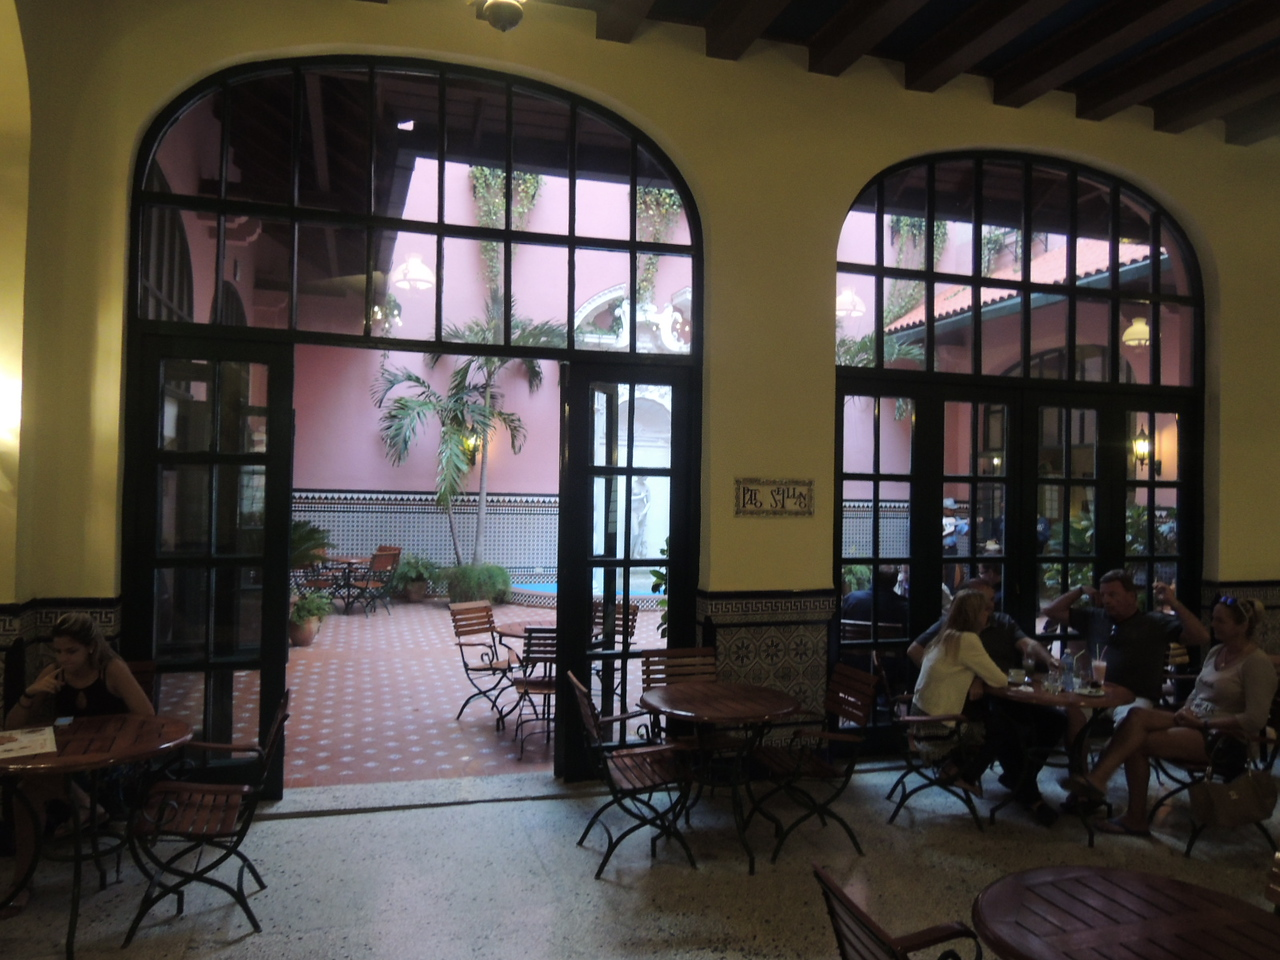 Just off the lobby at the hotel was a very sweet courtyard.  There were often live music groups performing out there.